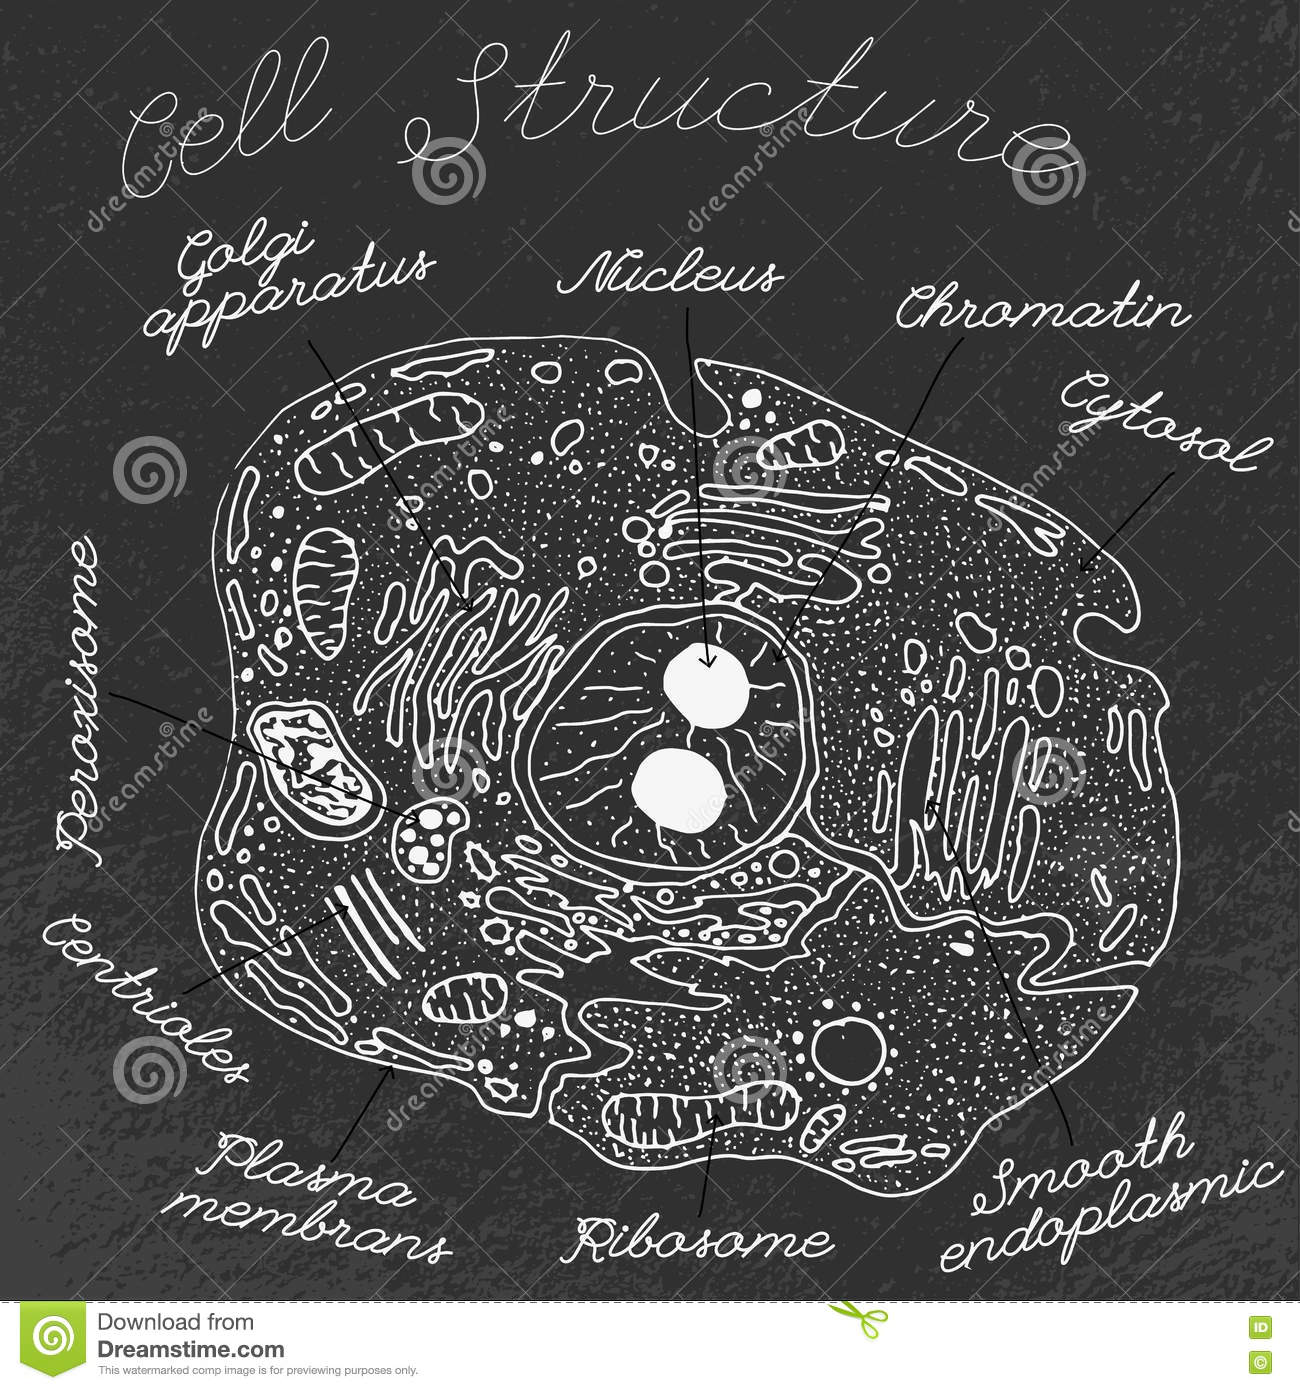 Ribosome Cartoons, Illustrations & Vector Stock Images ...